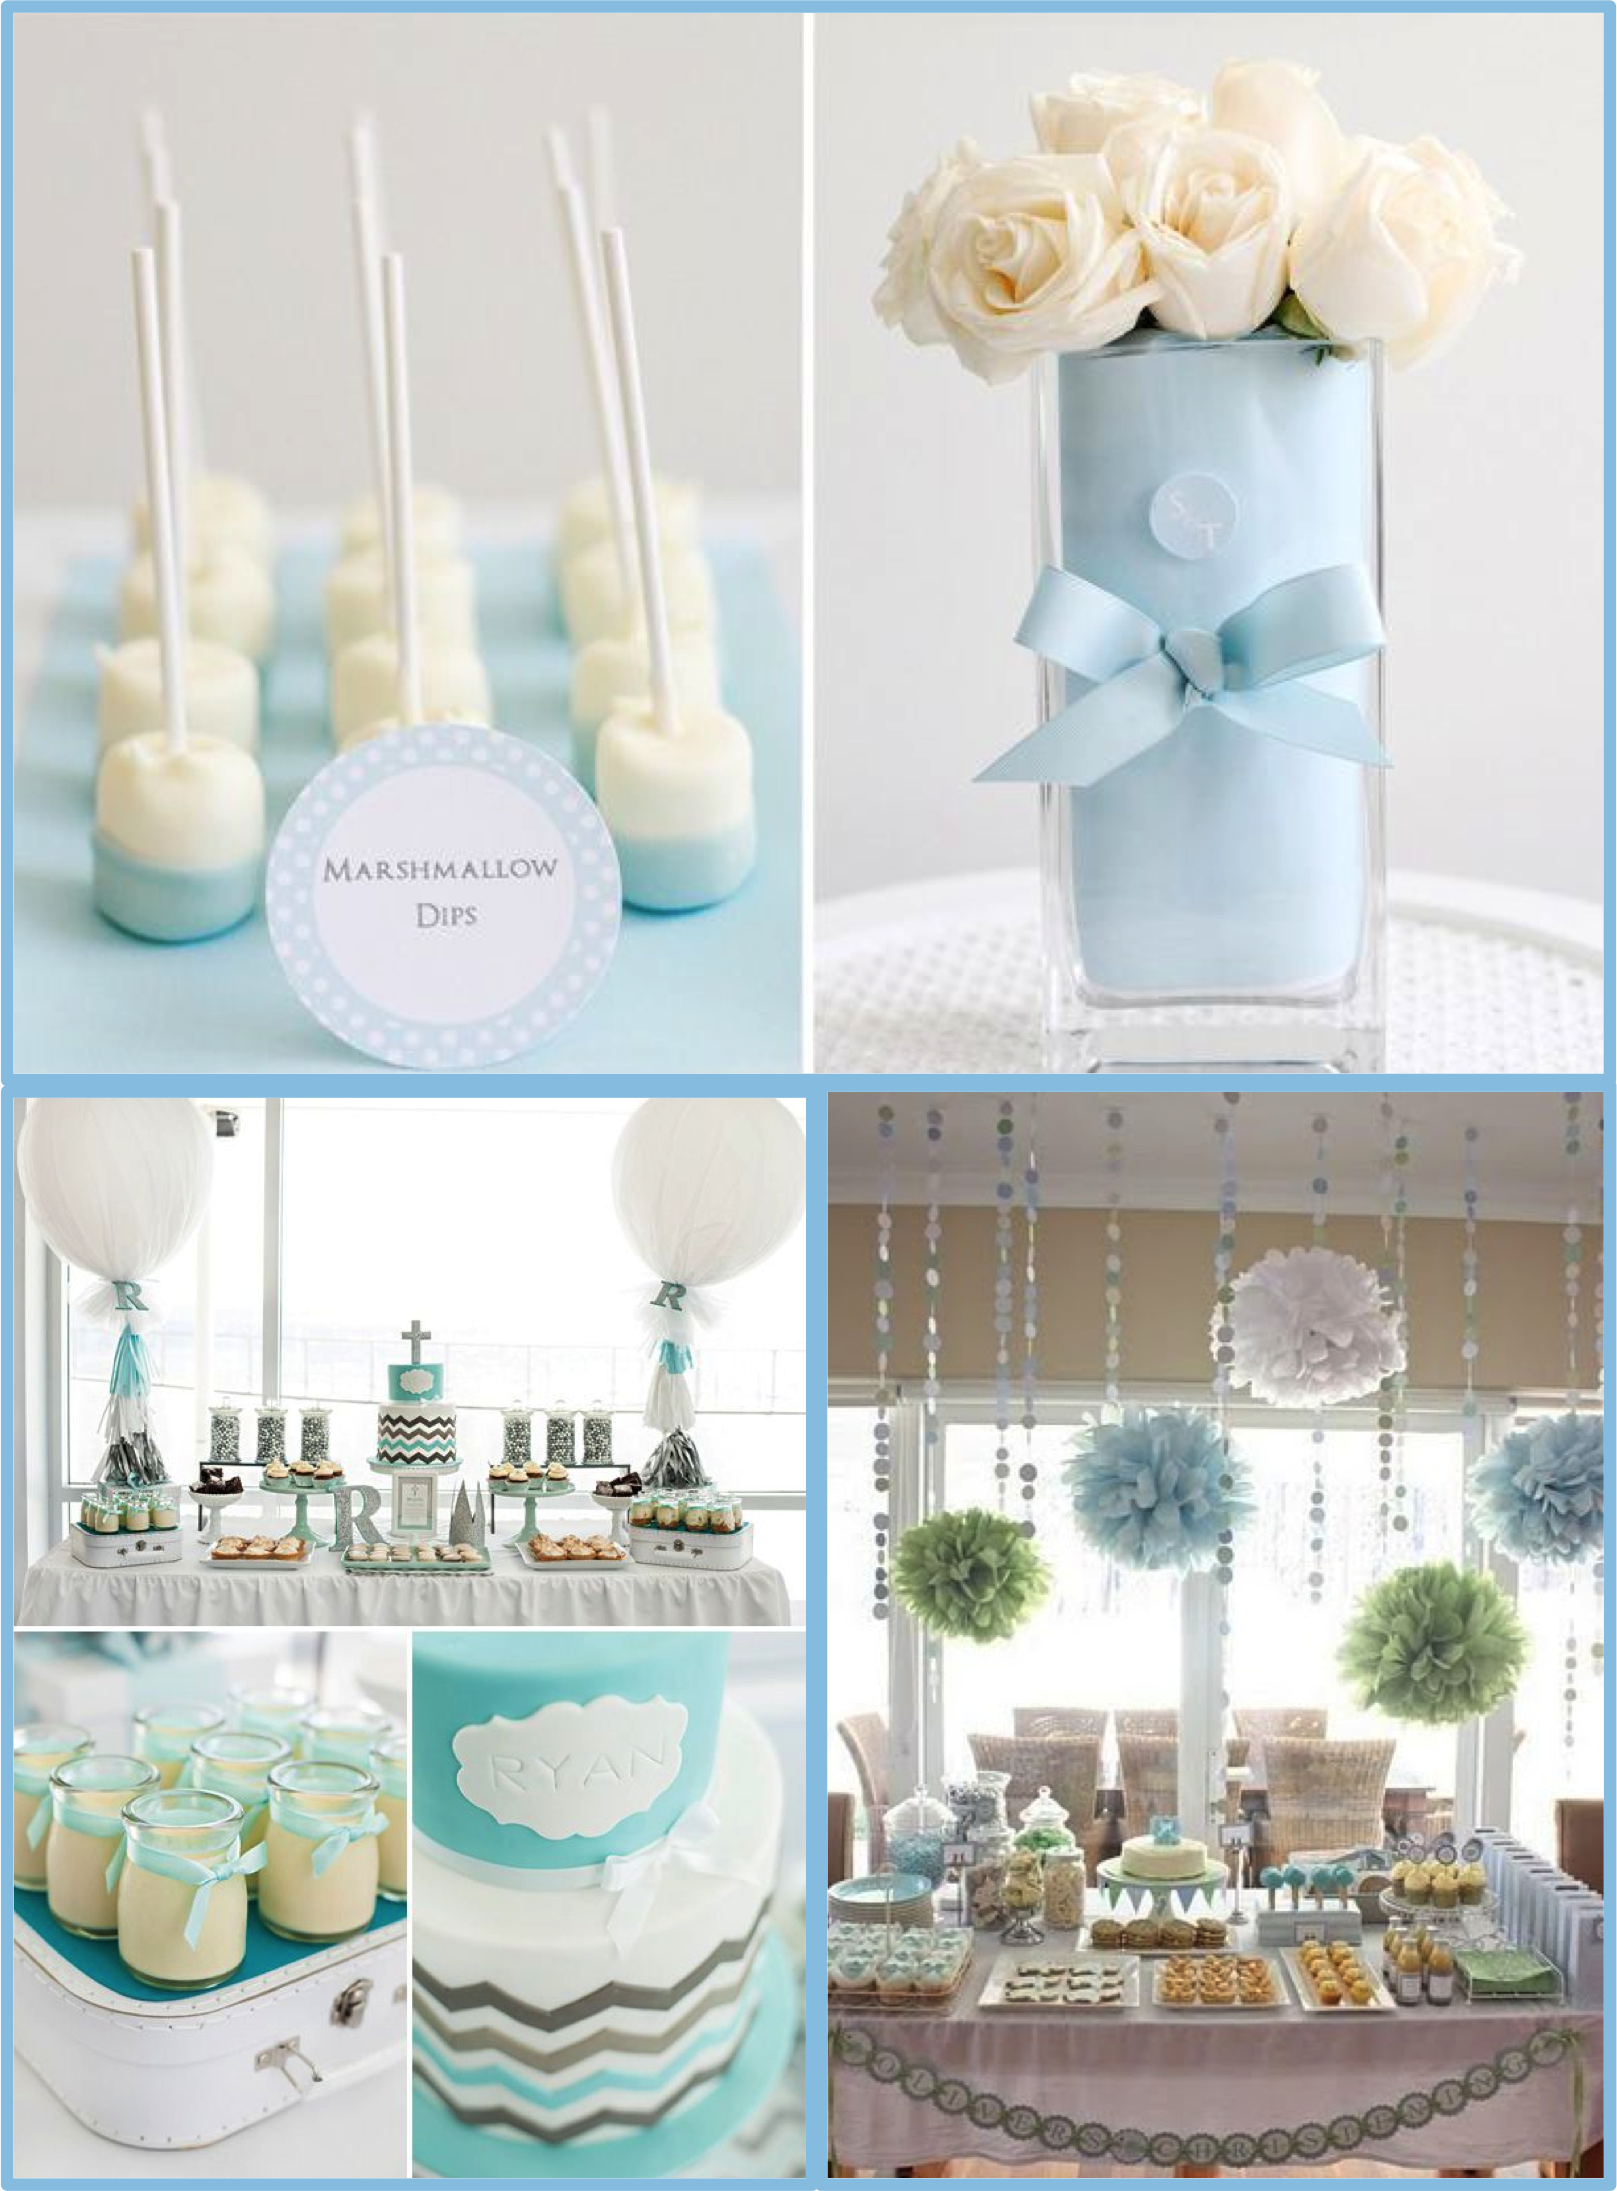 Taufeblue Christening Baptism Blue Boy Inspiration Ideas